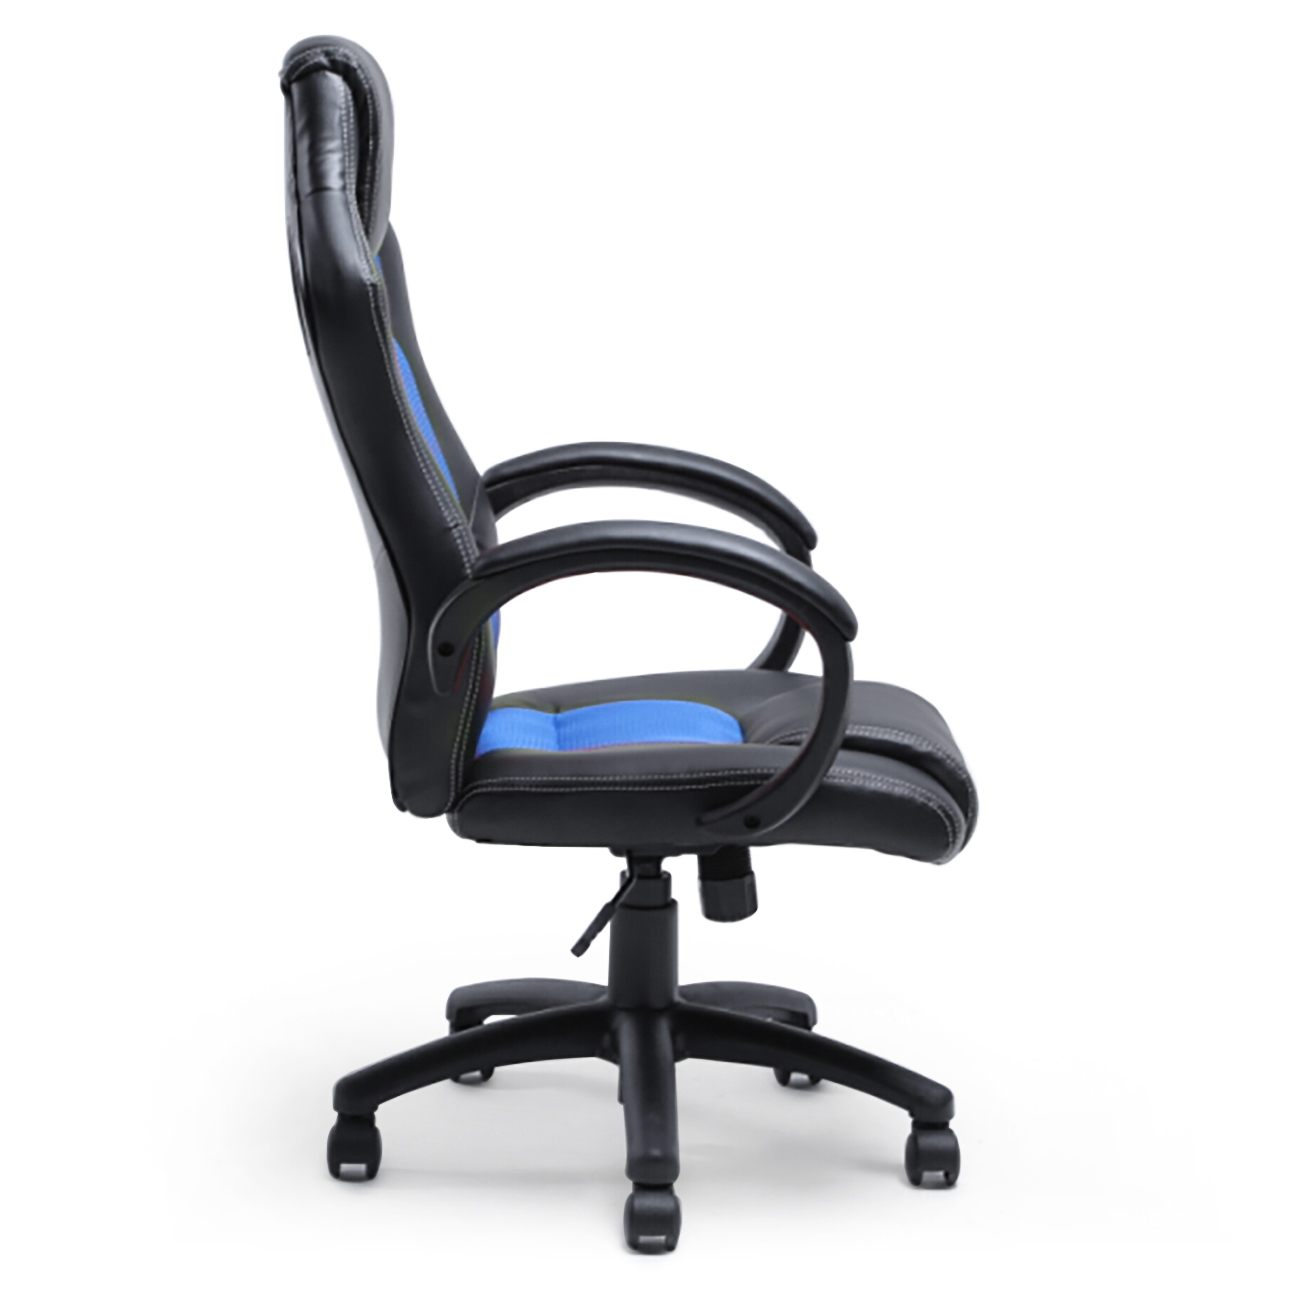 race car style bucket seat office desk chair gaming computer chair new